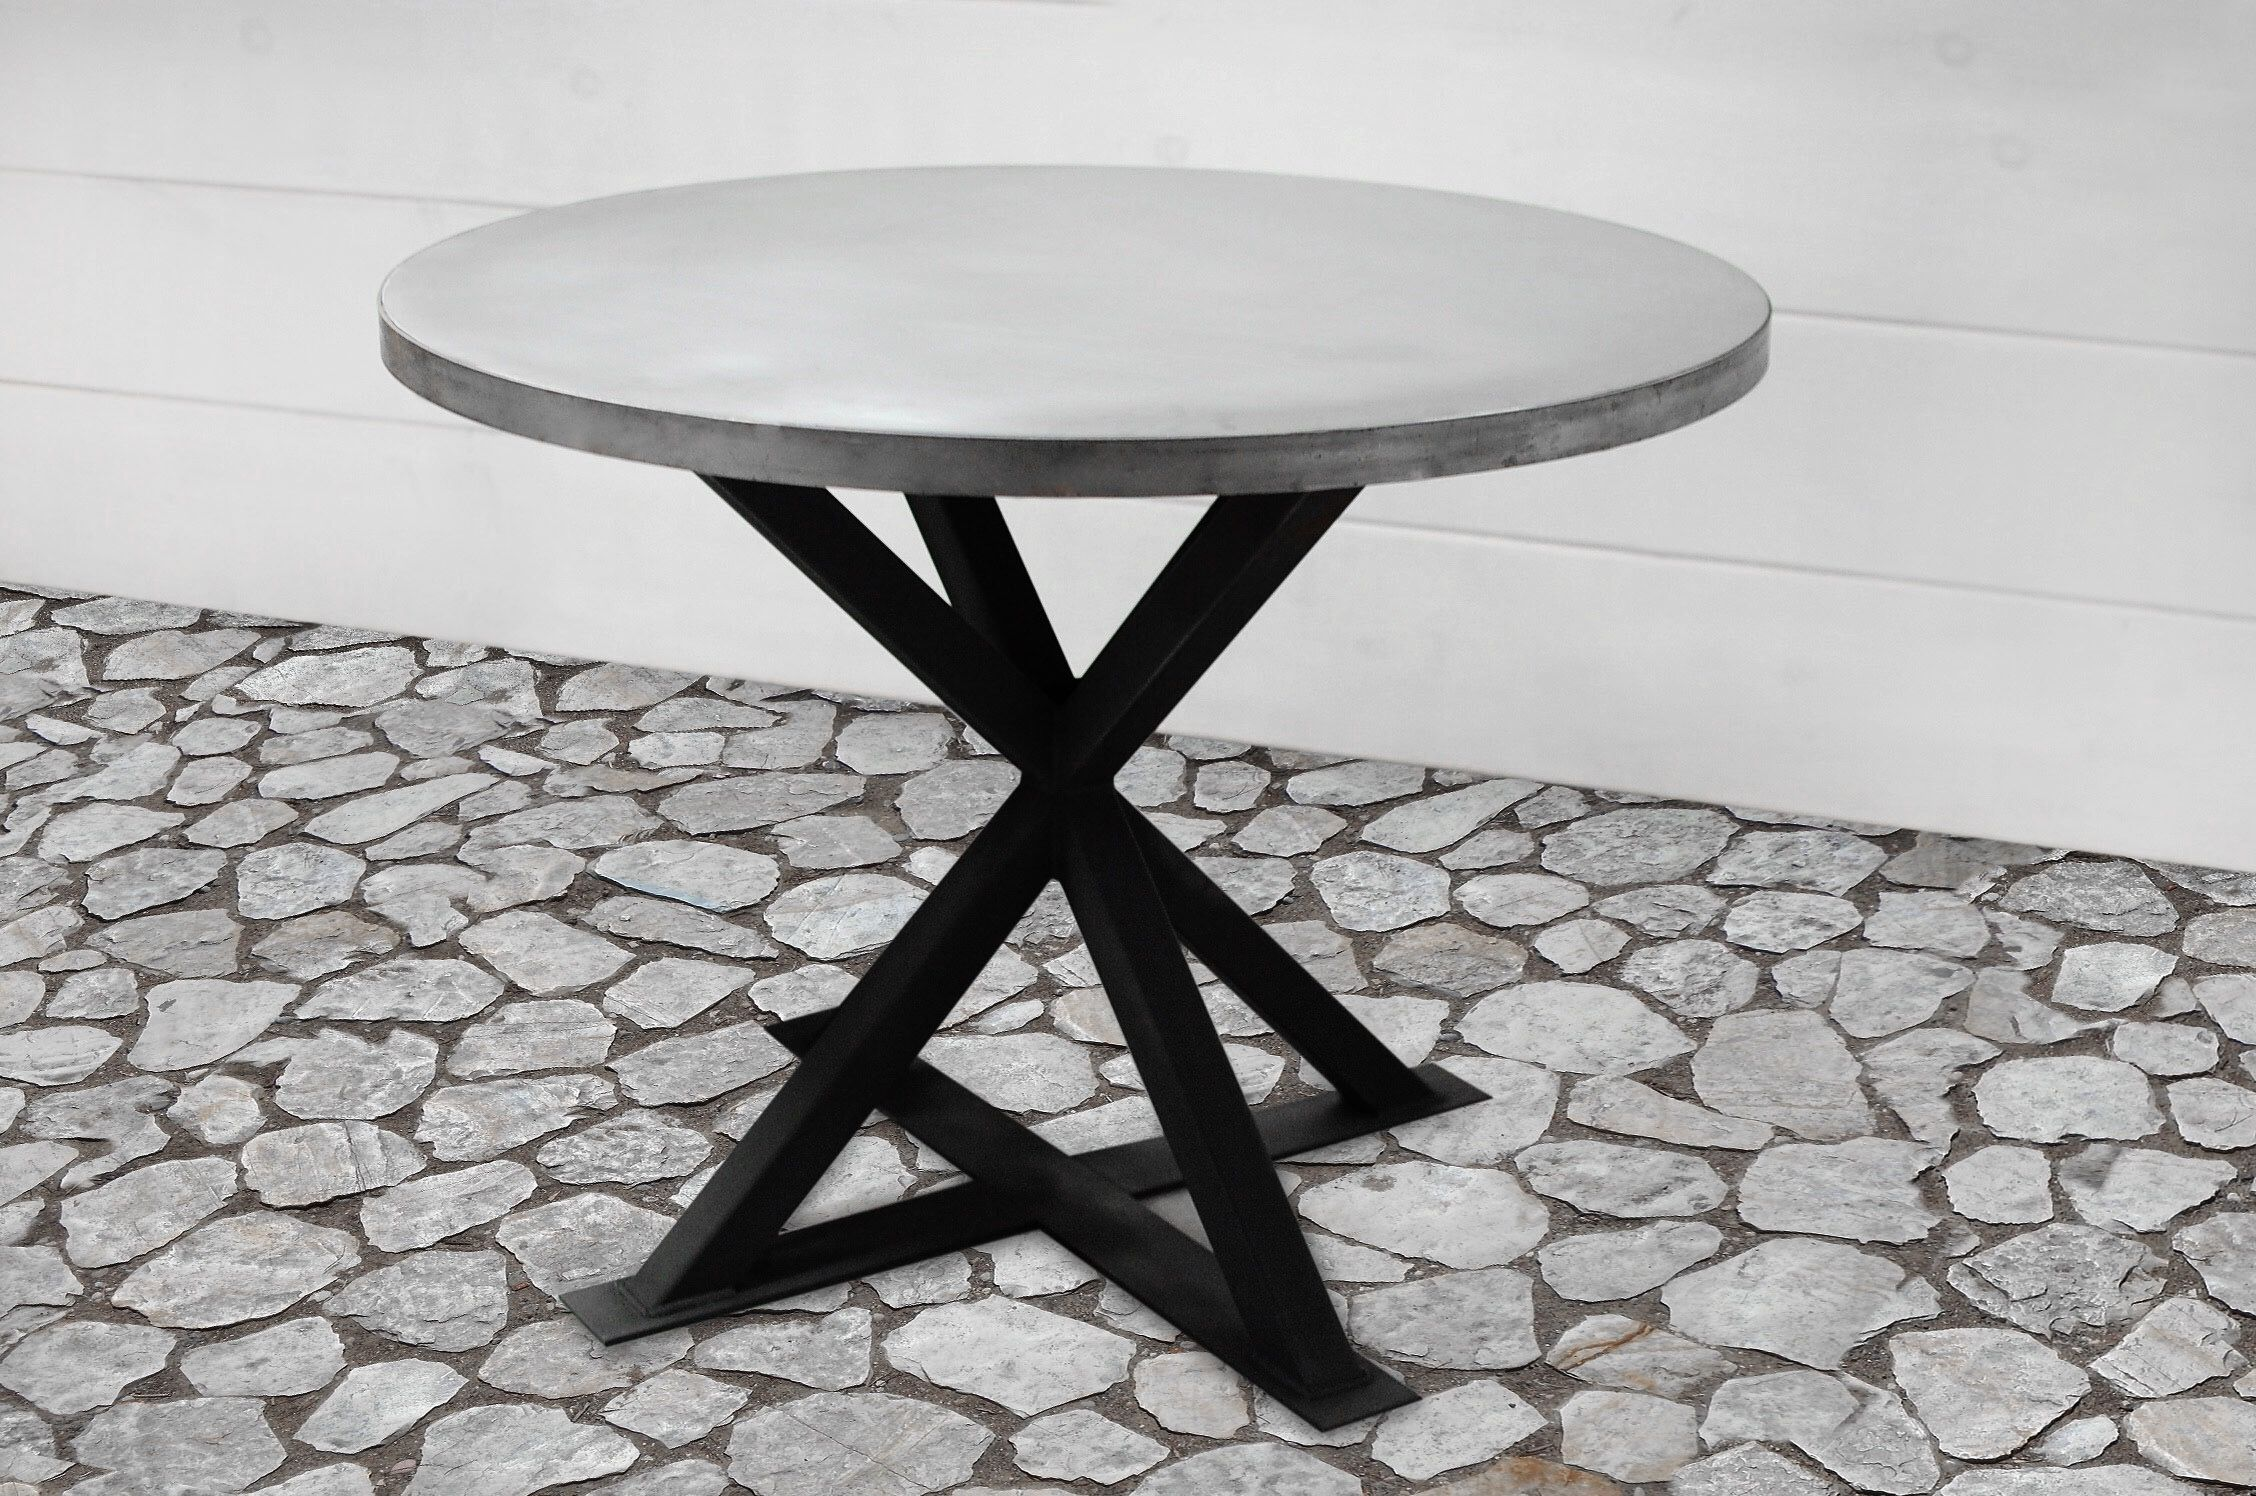 Handmade Kensington Round Zinc Dining Table By Southern Sunshine